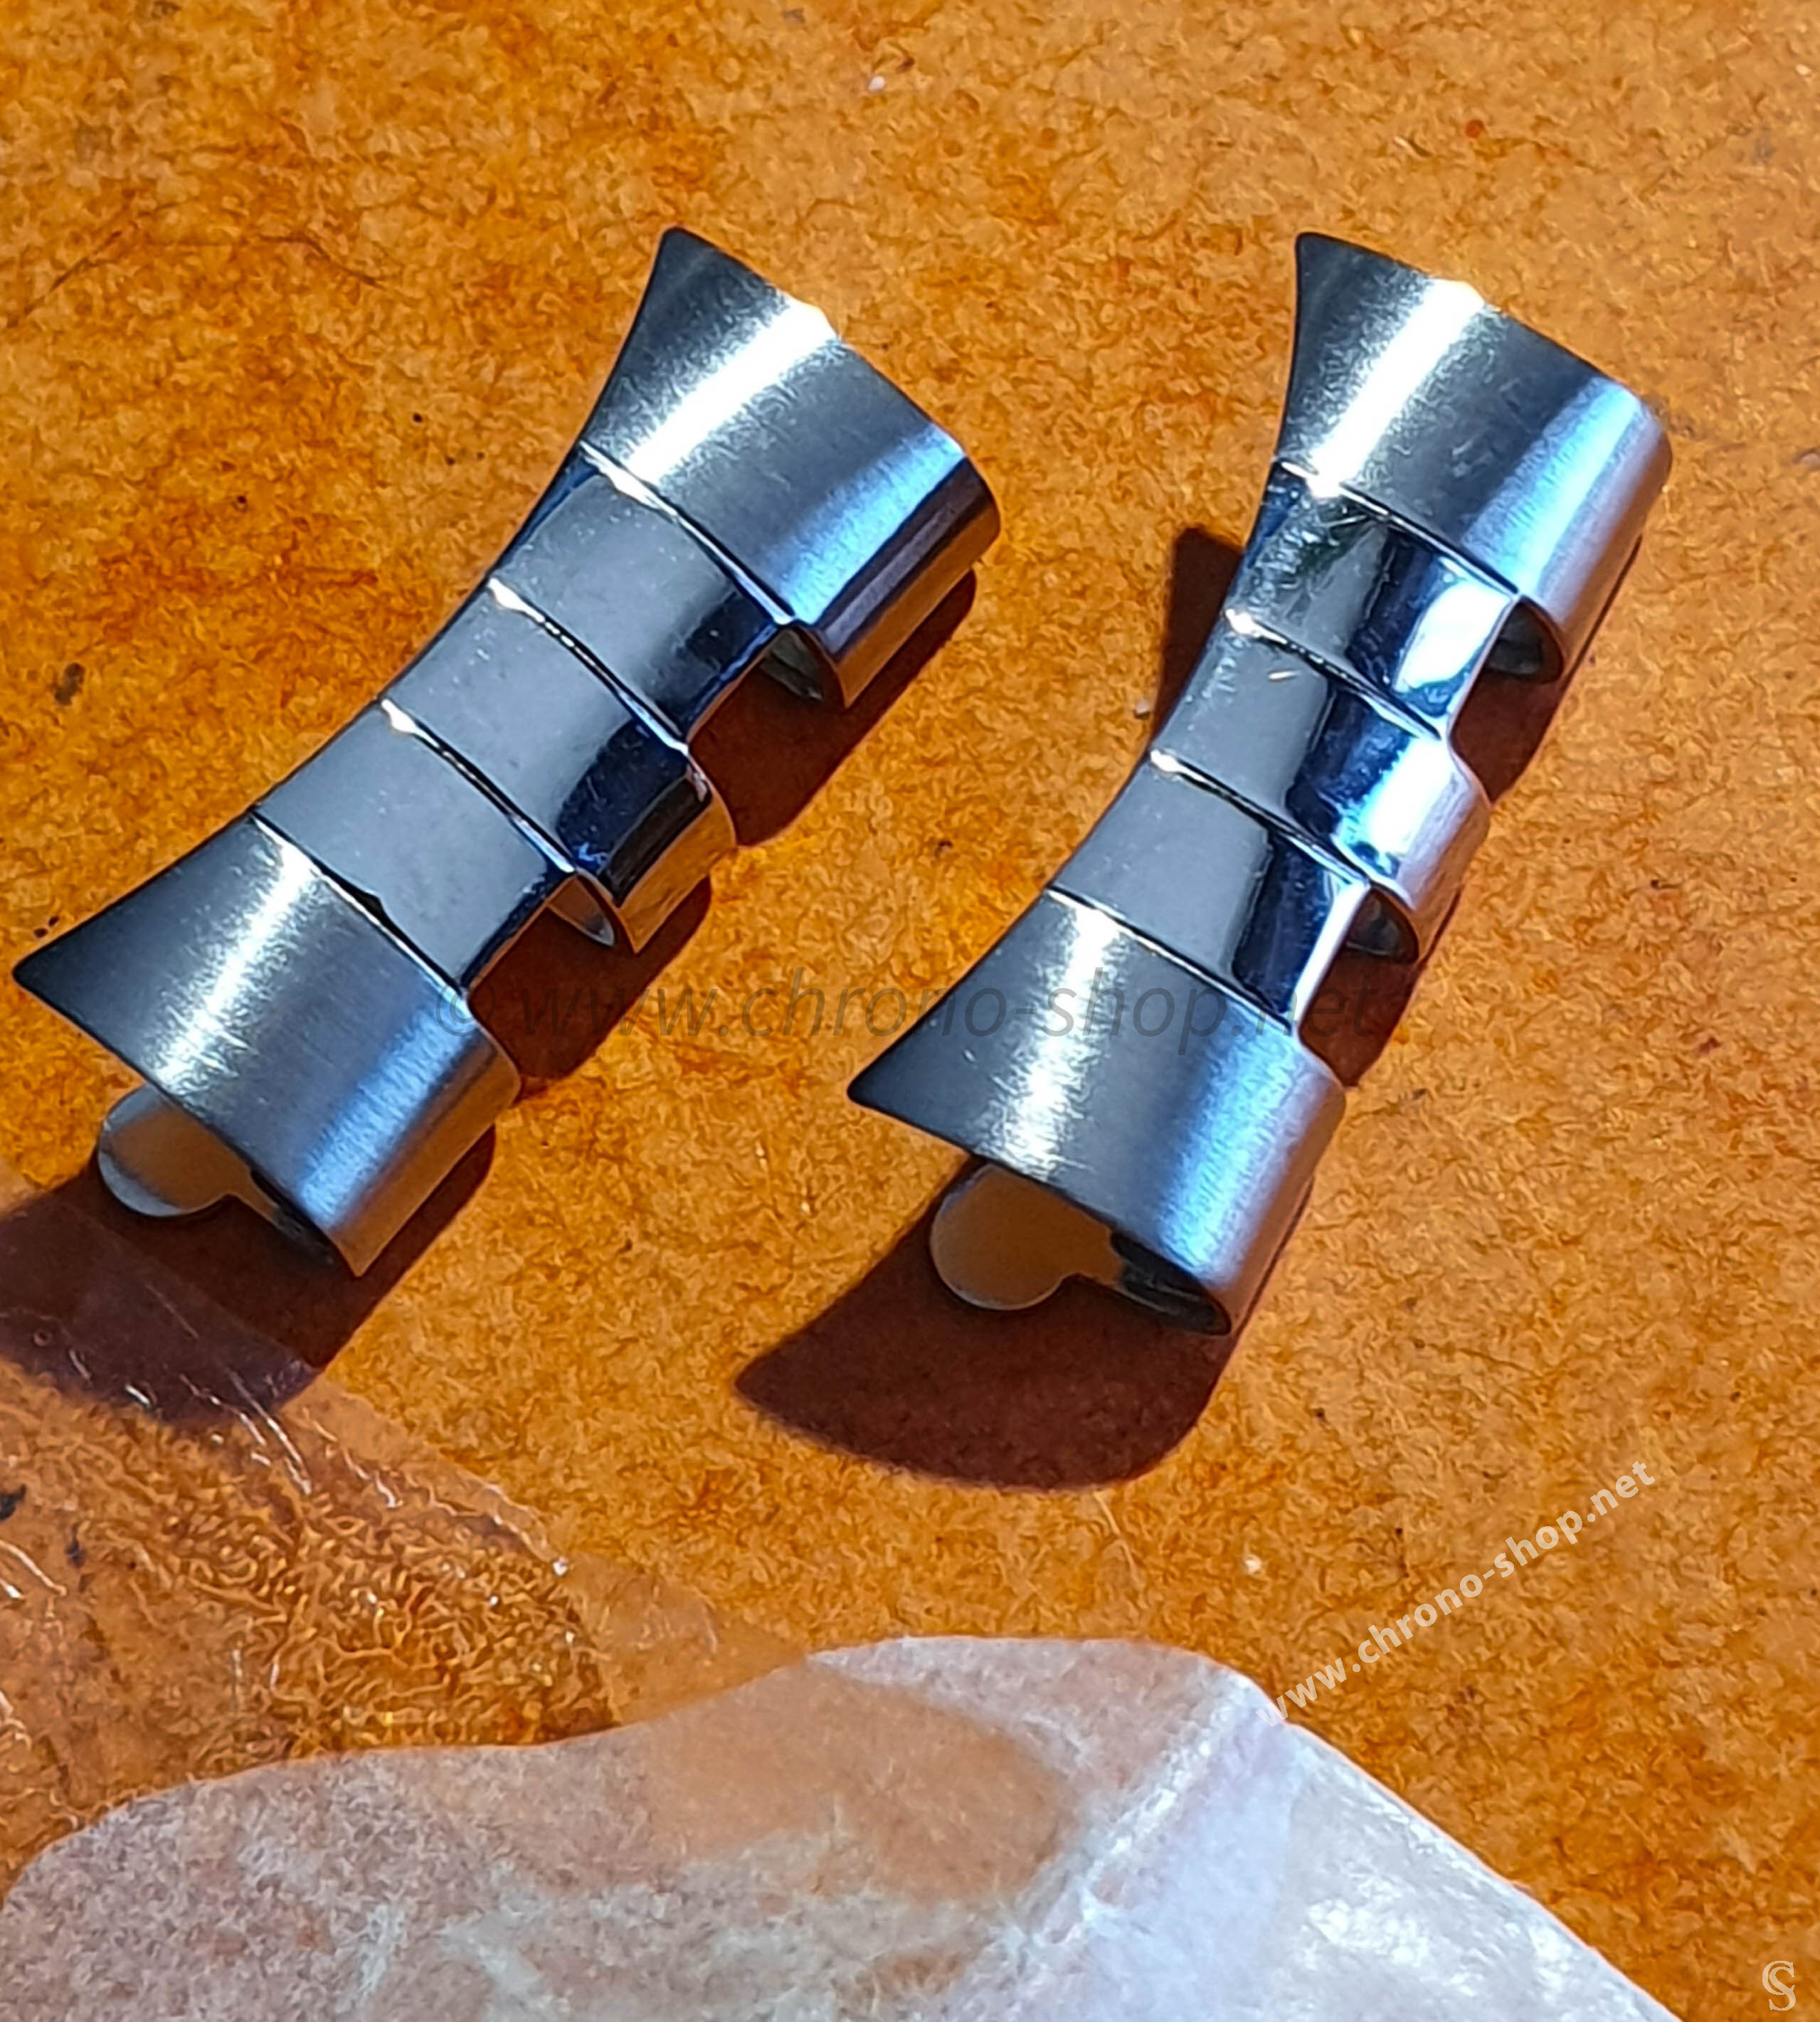 Details about  /New Anvil Cuff Link Rhodium Plated Blacksmith Tool Cufflink 0027